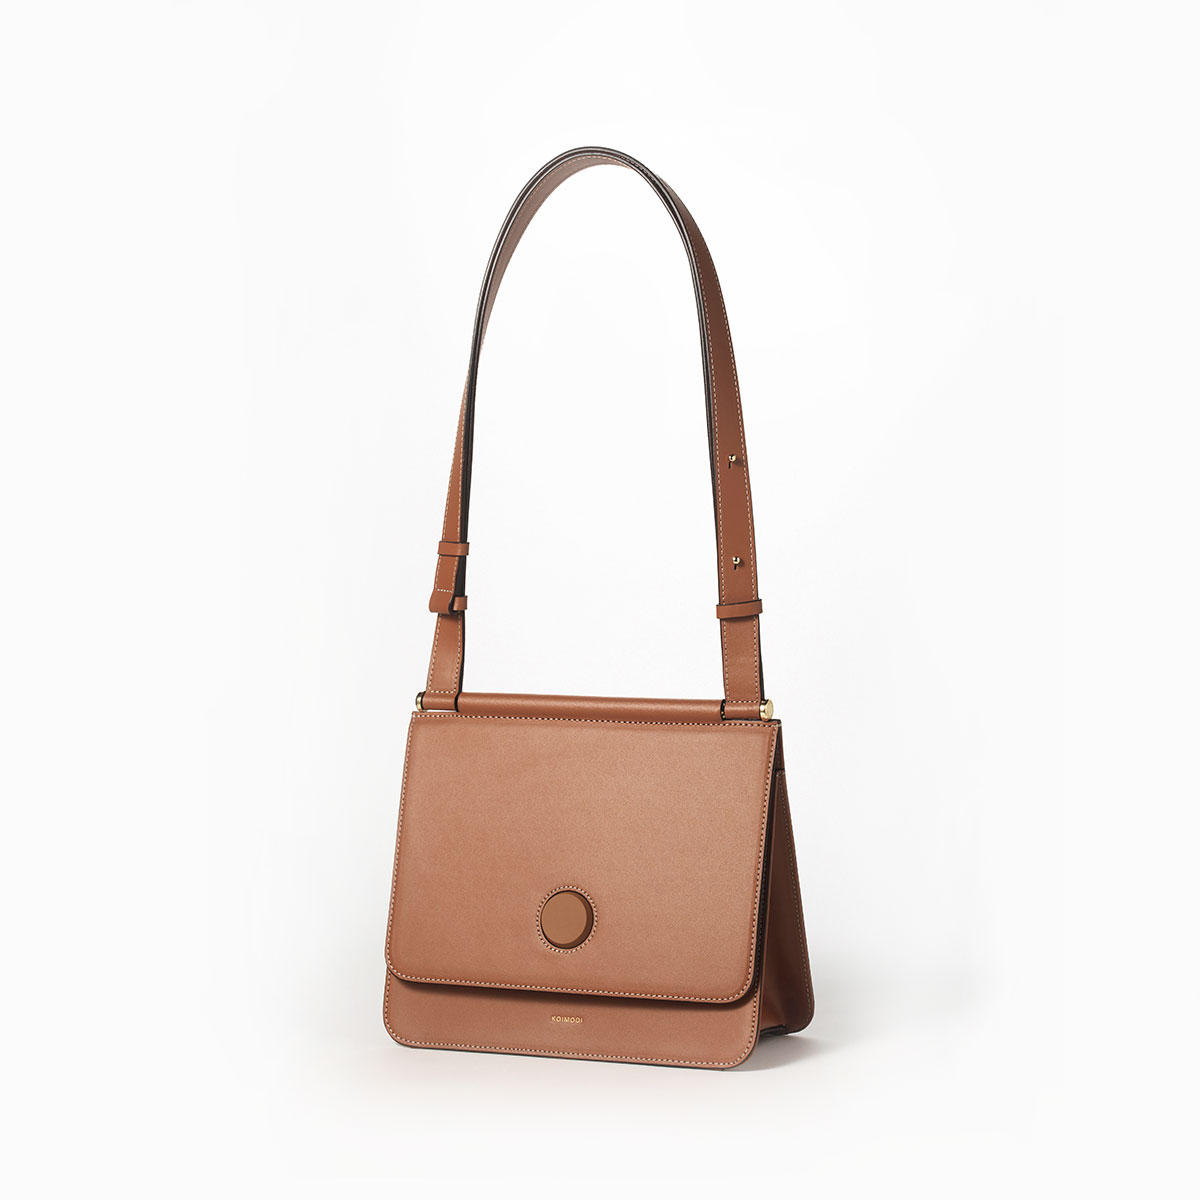 A-Bag (Brown)